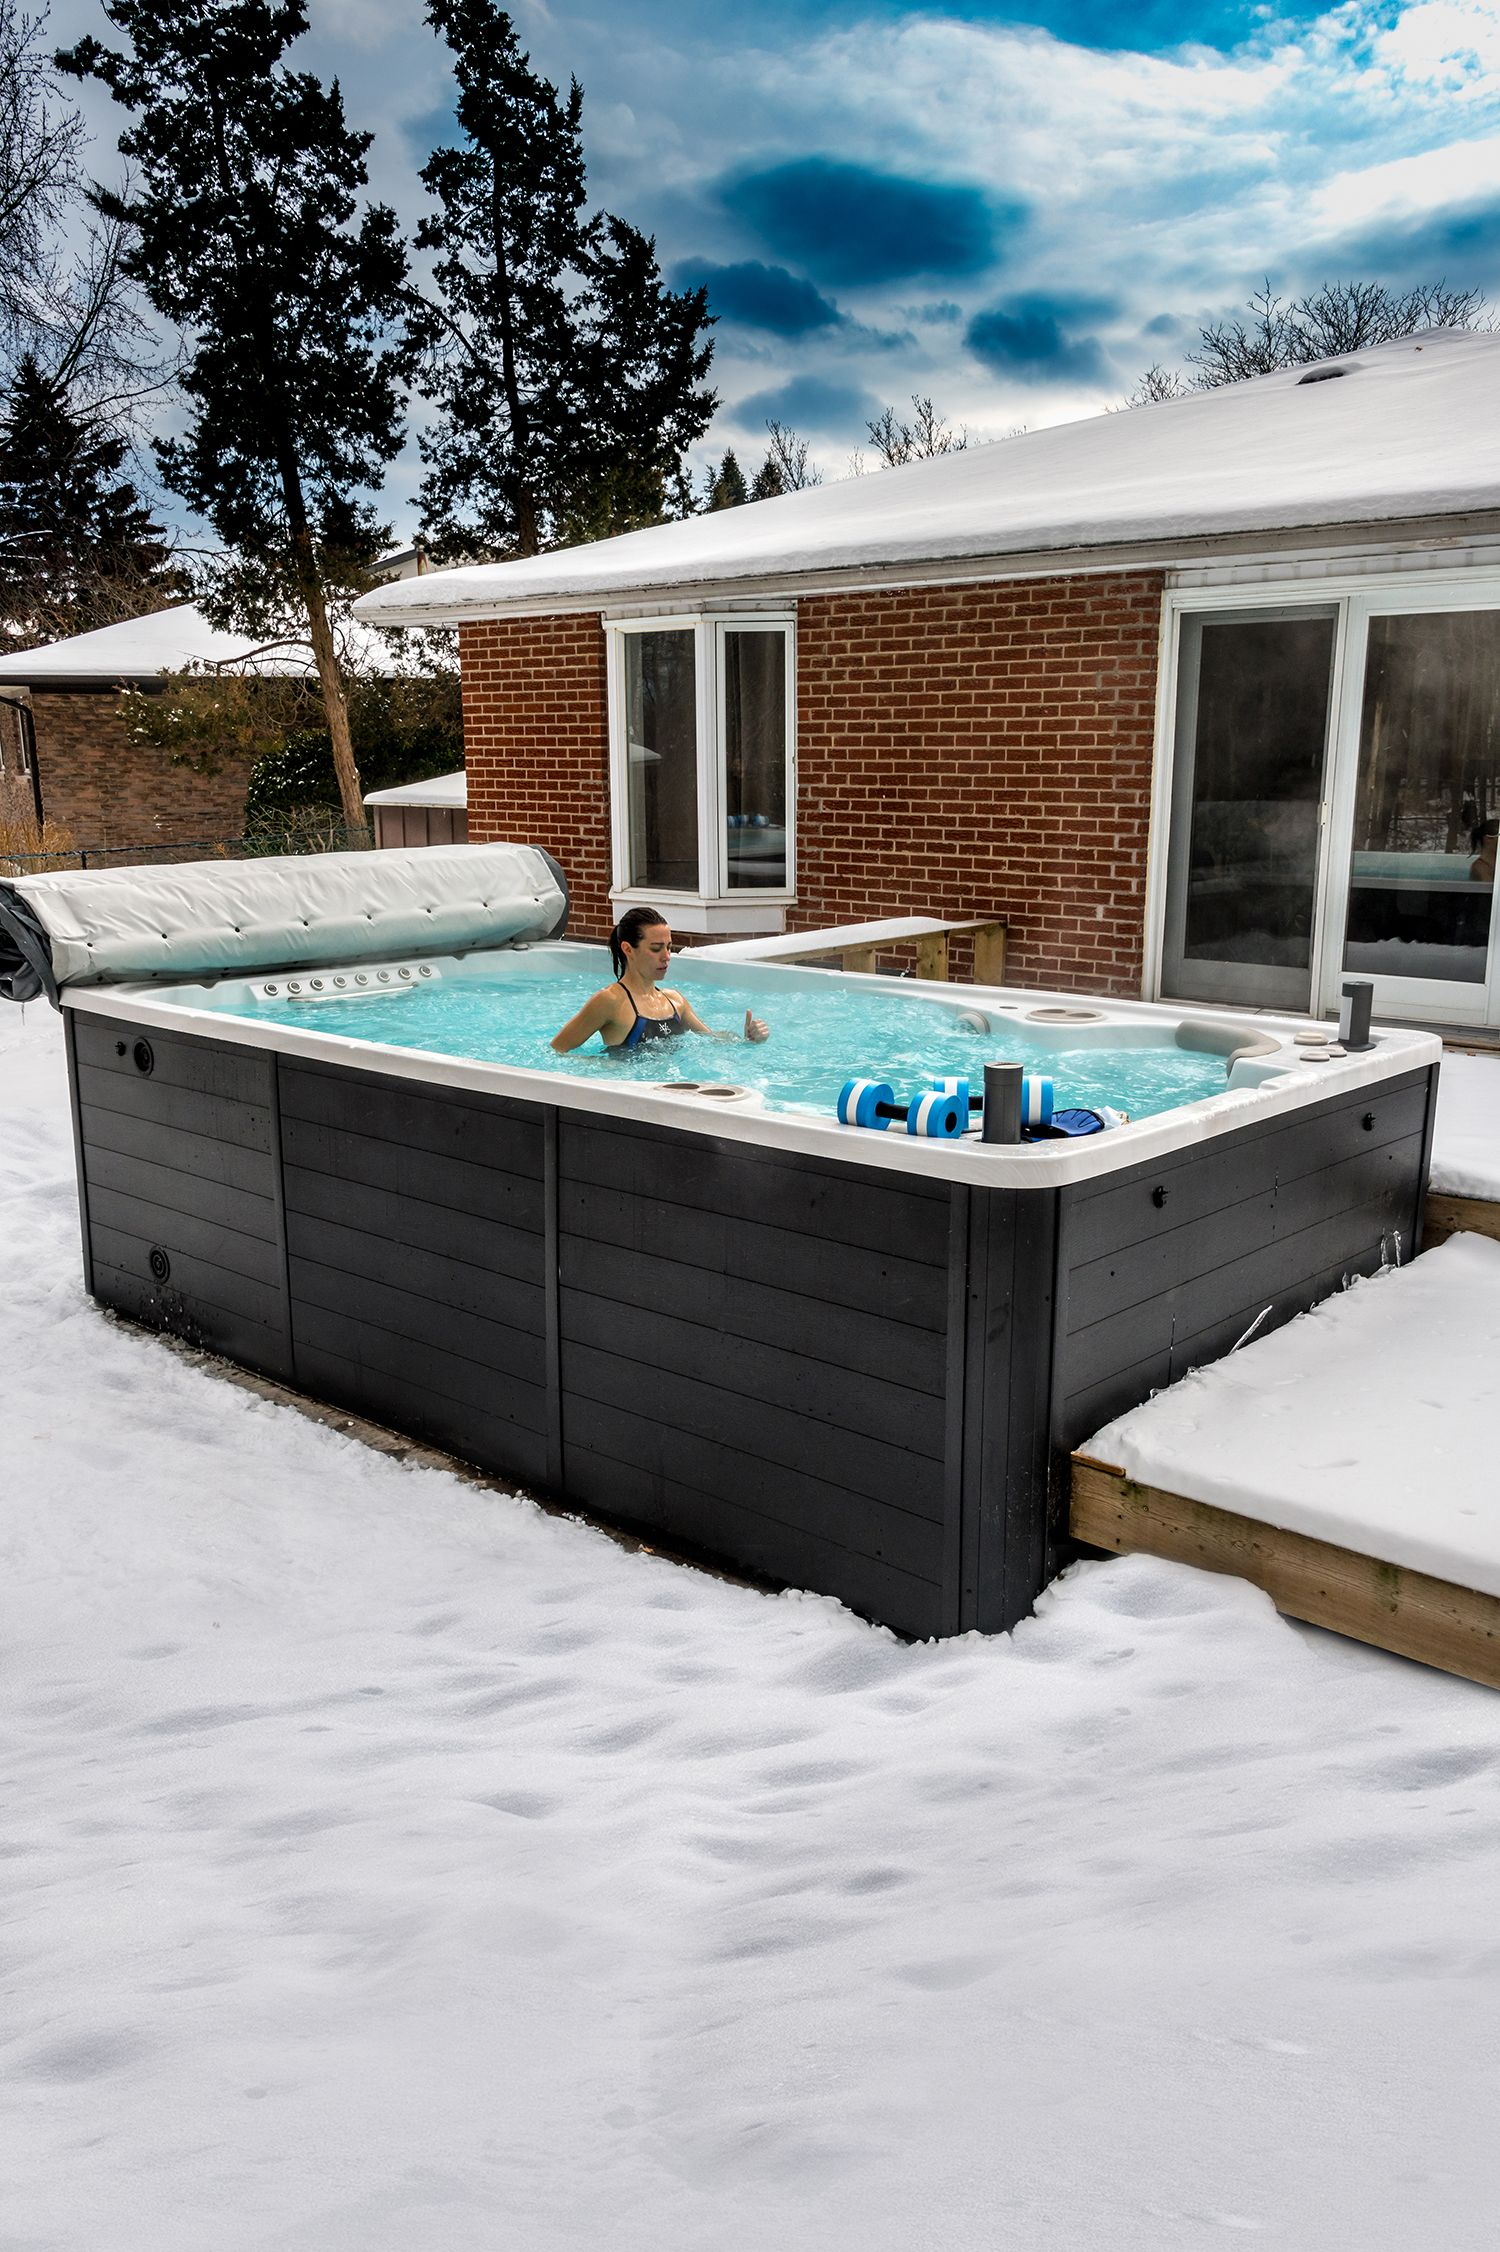 Enjoy Your Swim Spa Year Round By Keeping It Close Your Home Home And Easily Accessible Swim Spa Lap Pools Backyard Hot Tub Swim Spa